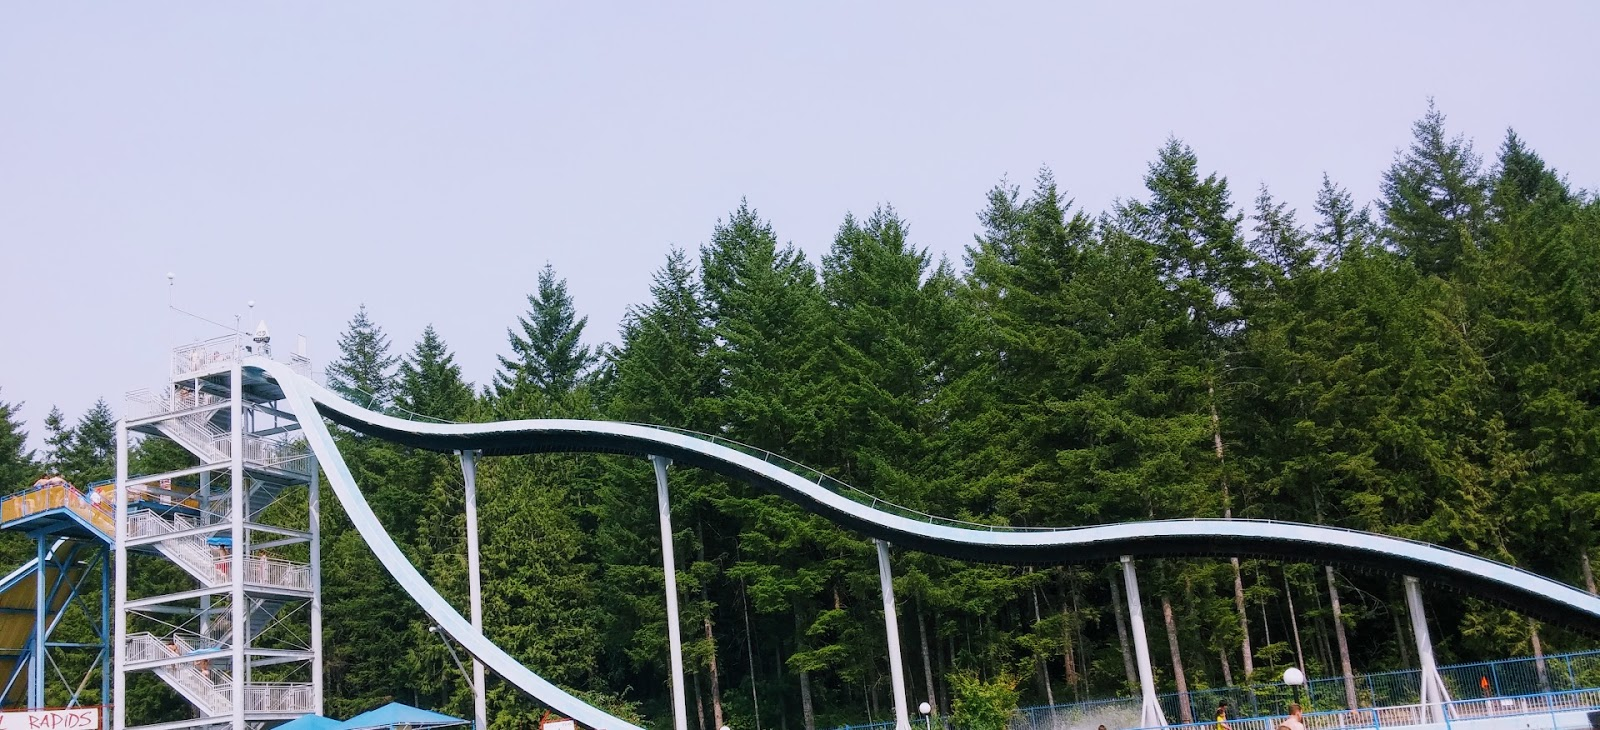 Cultus Lake Water Park is located in 4150 Columbia Valley Hwy, Fraser Valley E, BC V2R 5H6.